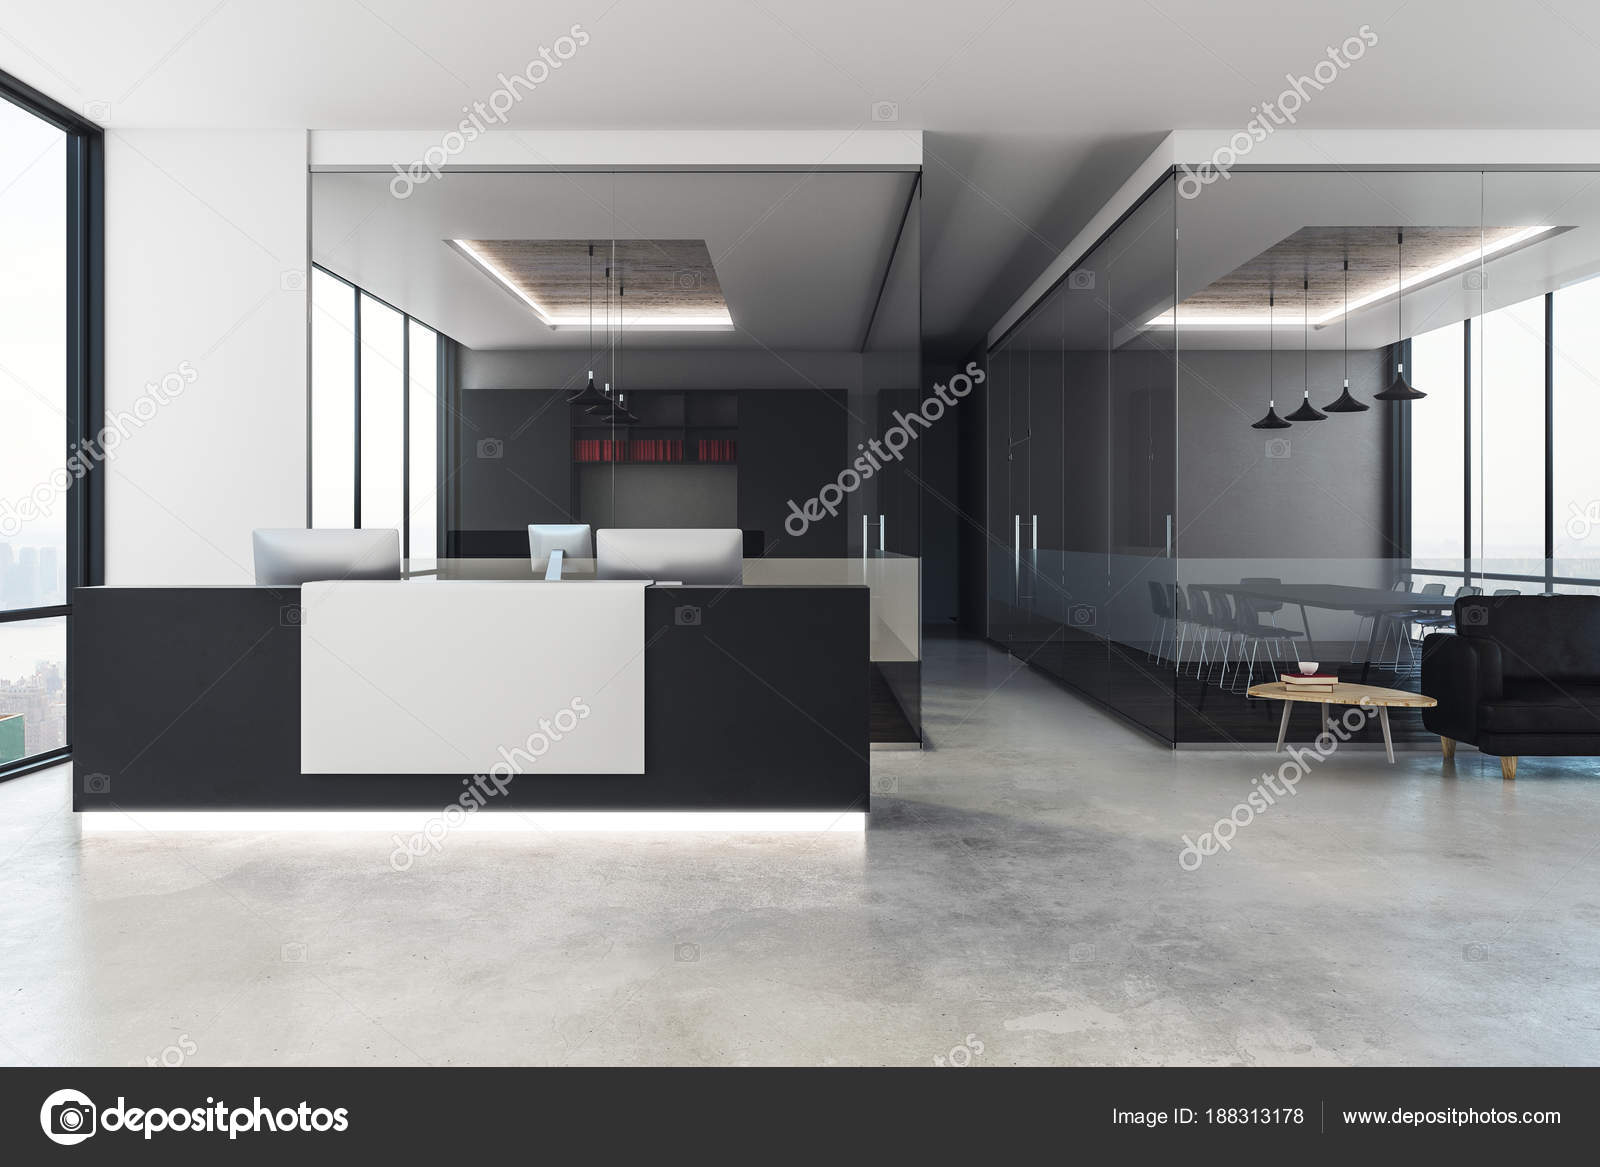 office reception interior. Modern Office Interior With Reception \u2014 Stock Photo R